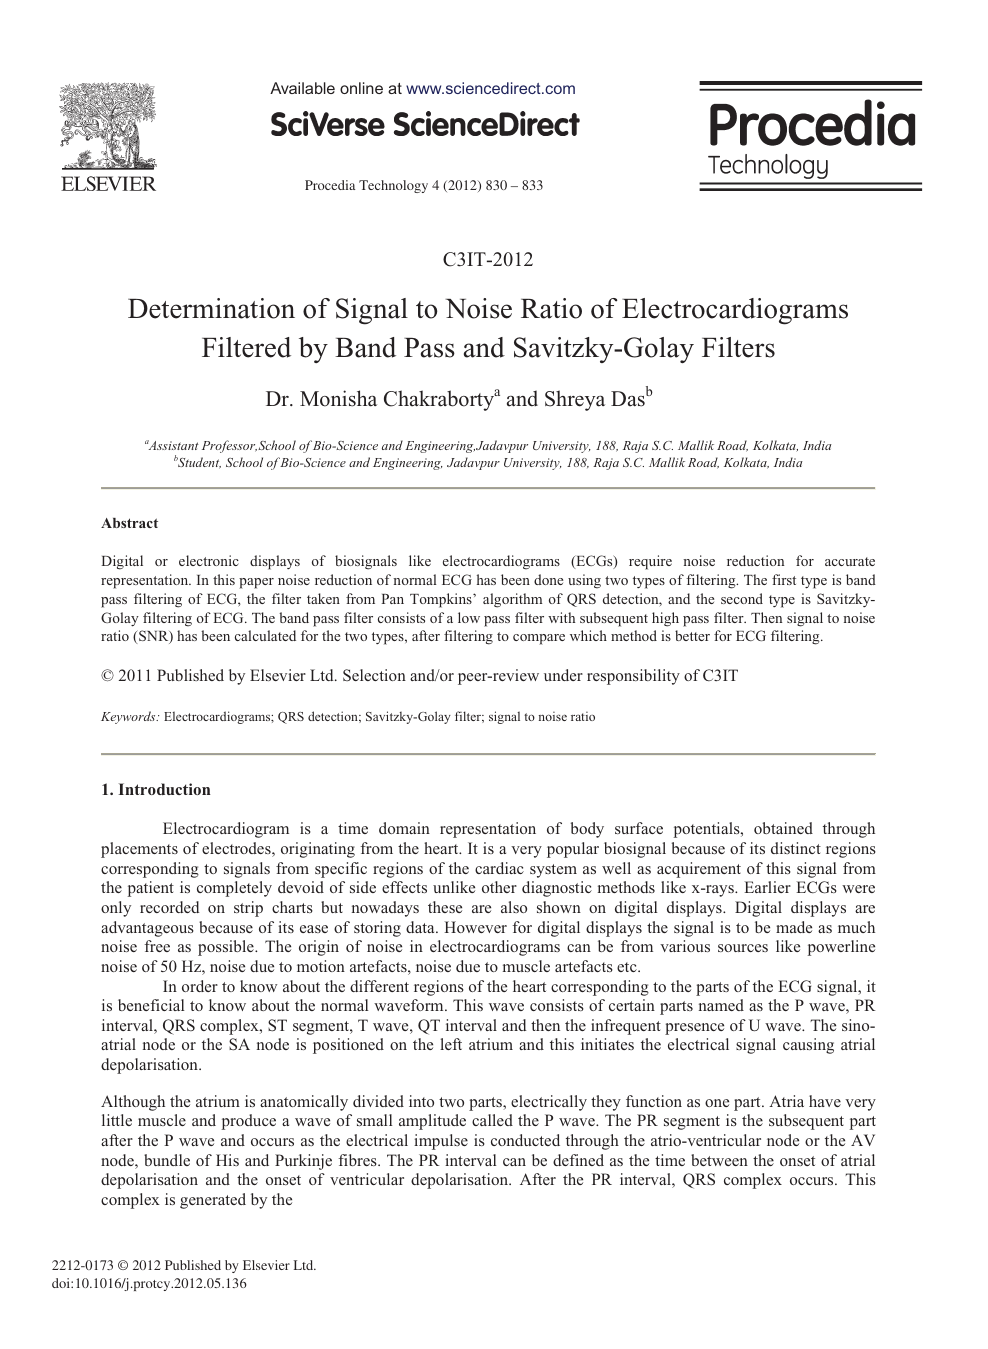 Determination of Signal to Noise Ratio of Electrocardiograms